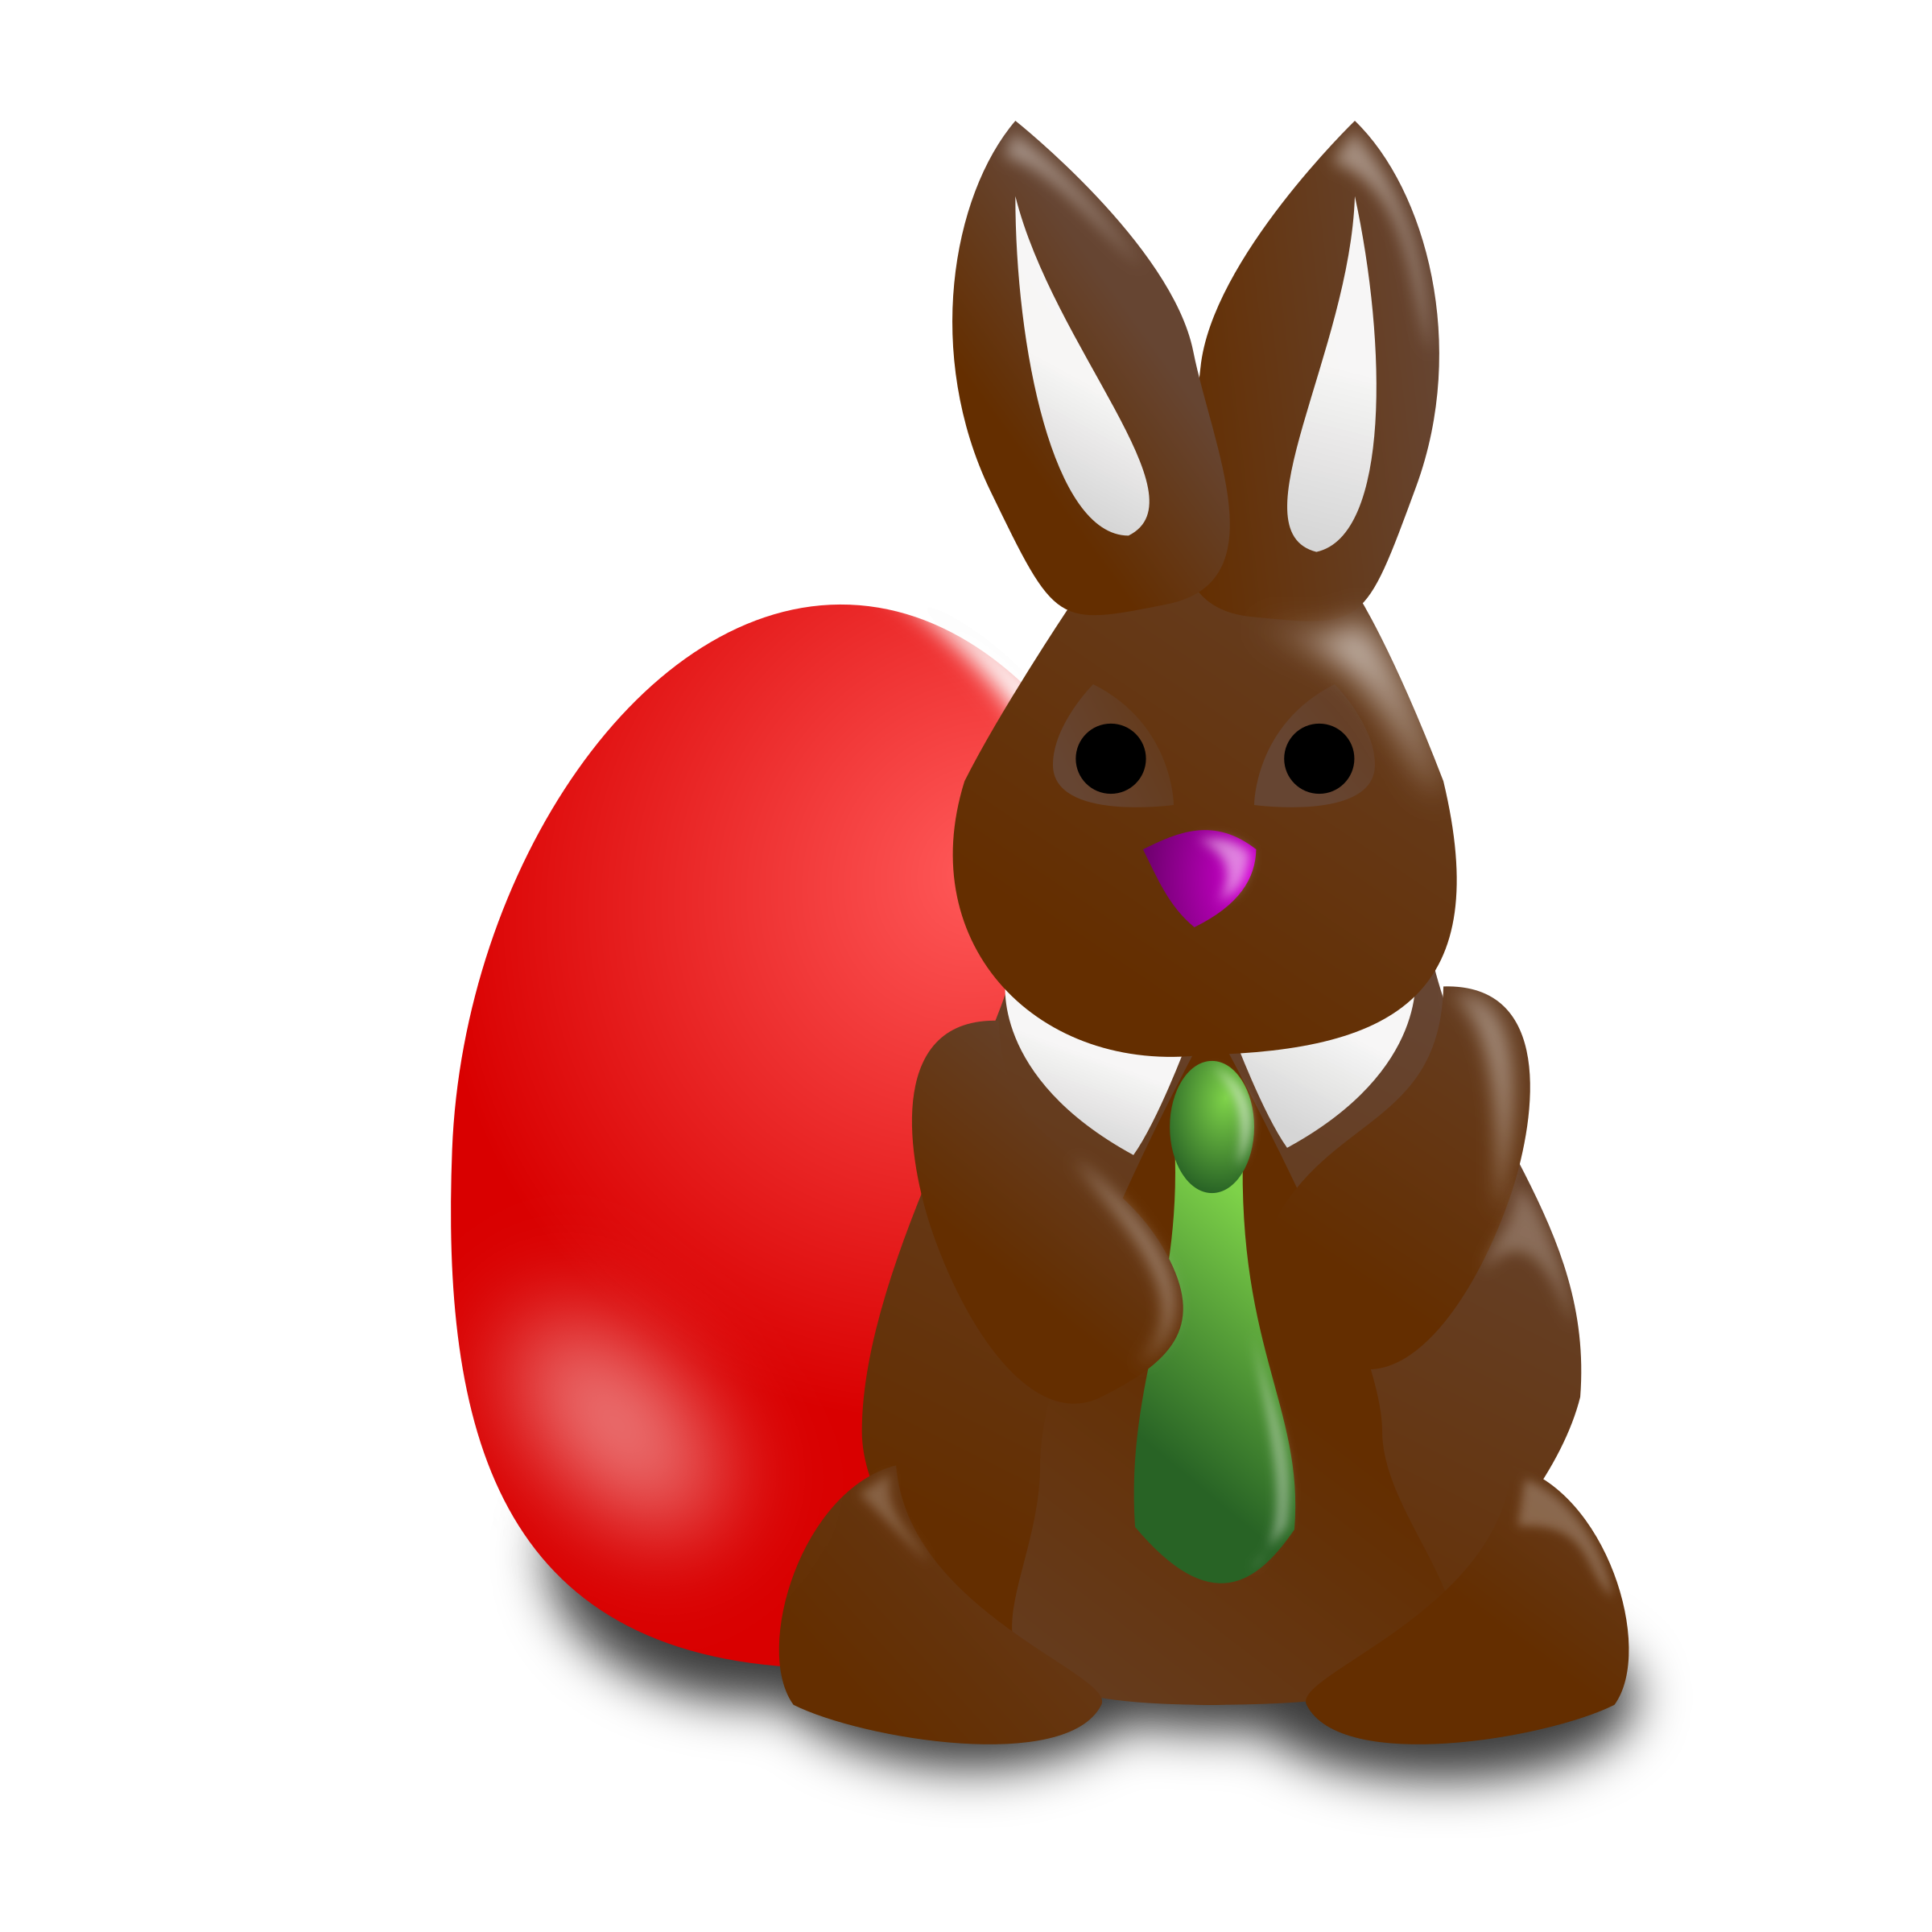 transparent library Commons clipart. File easter icon flip